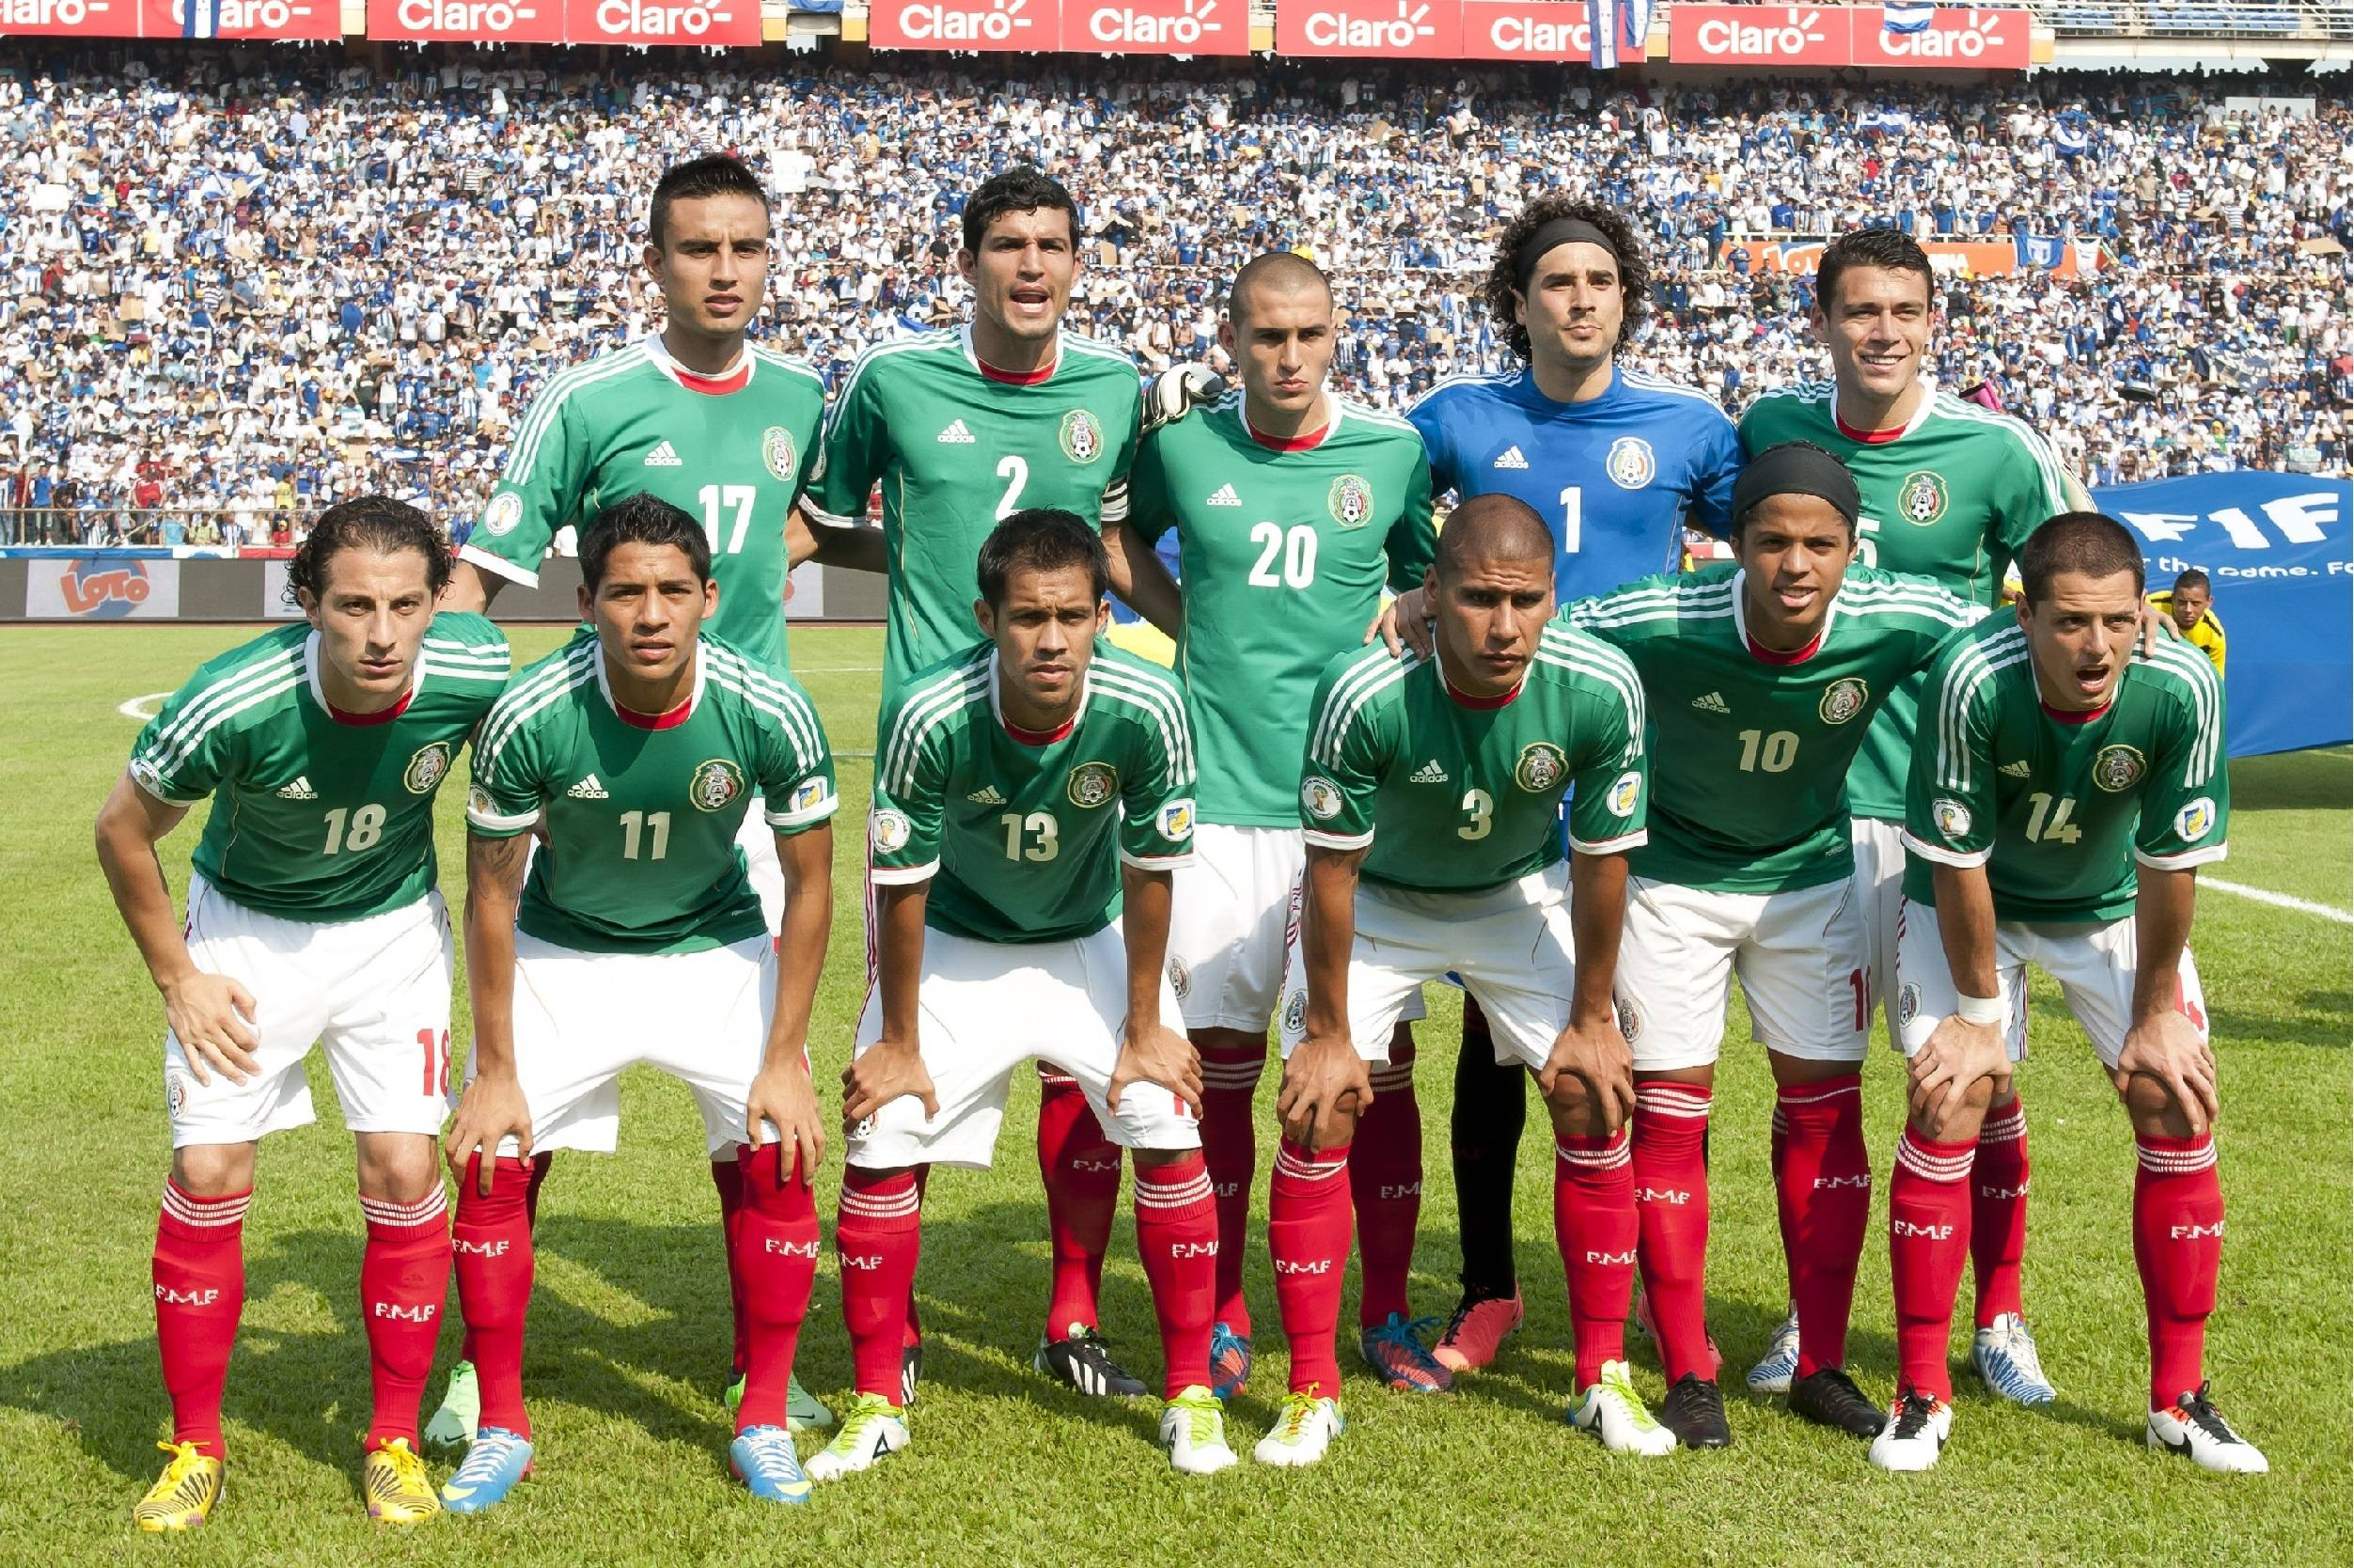 Mexican Soccer Team 2015 Wallpapers 2504x1668